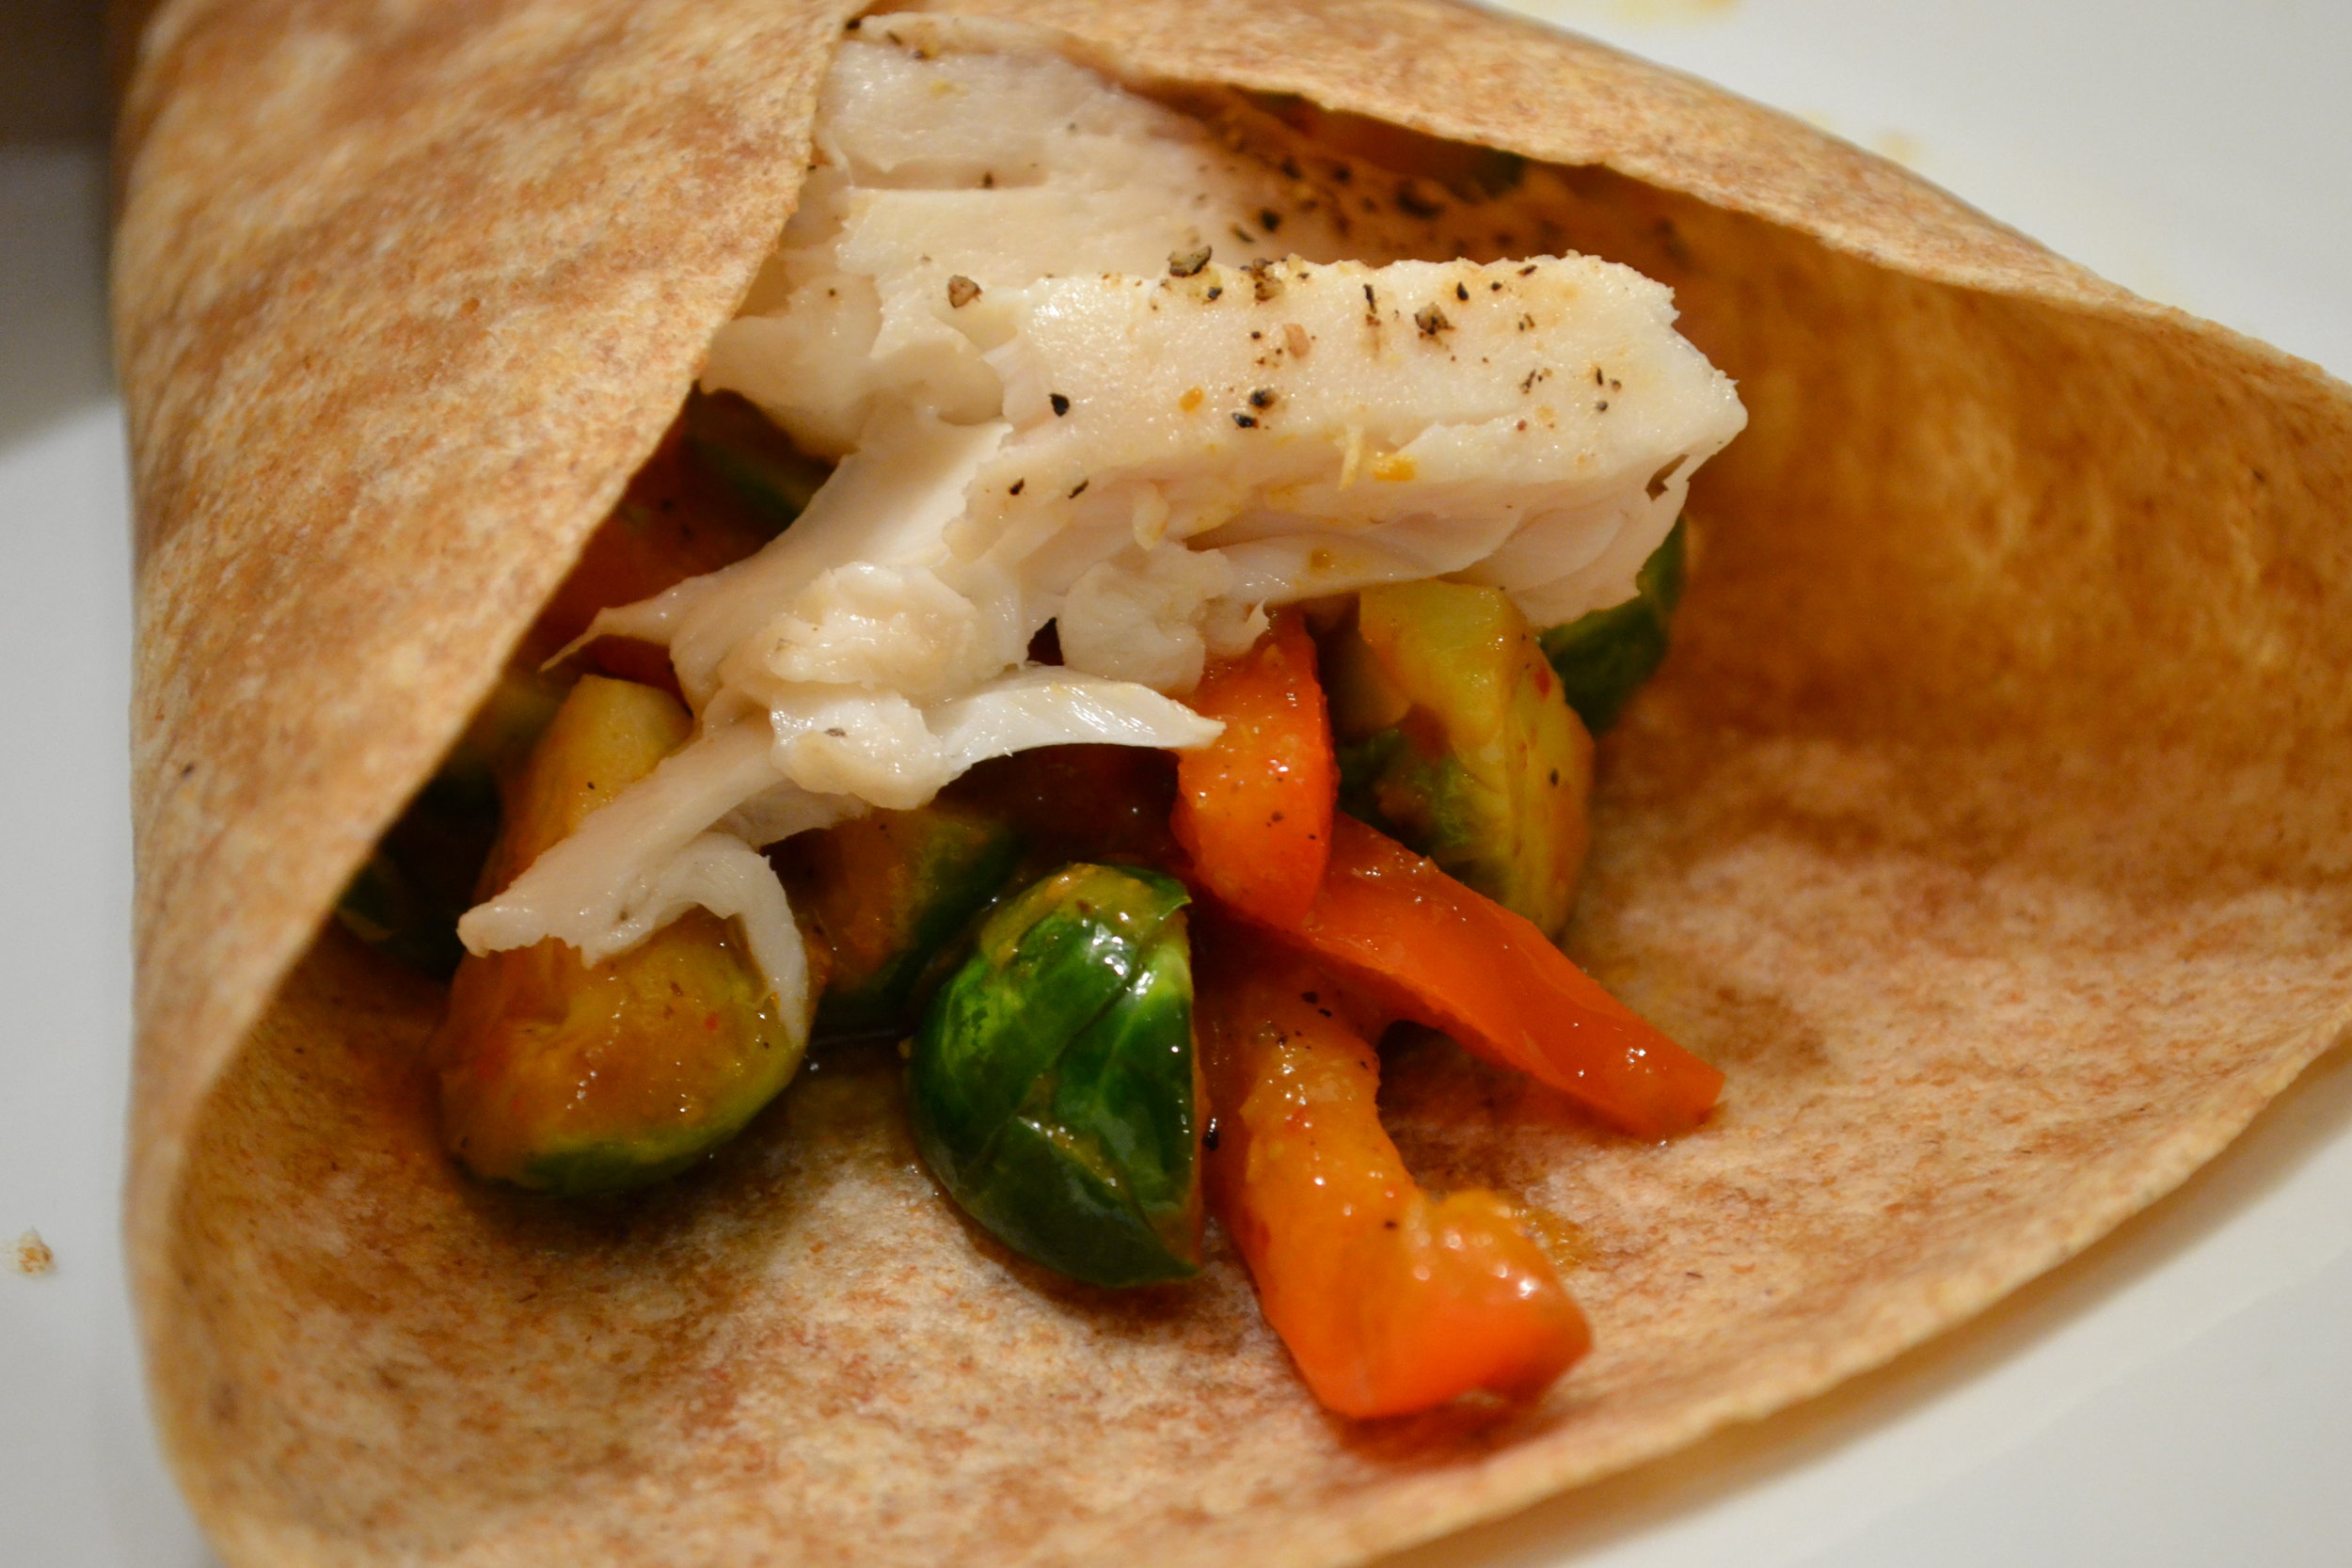 Brussels Sprouts and Tilapia Tacos